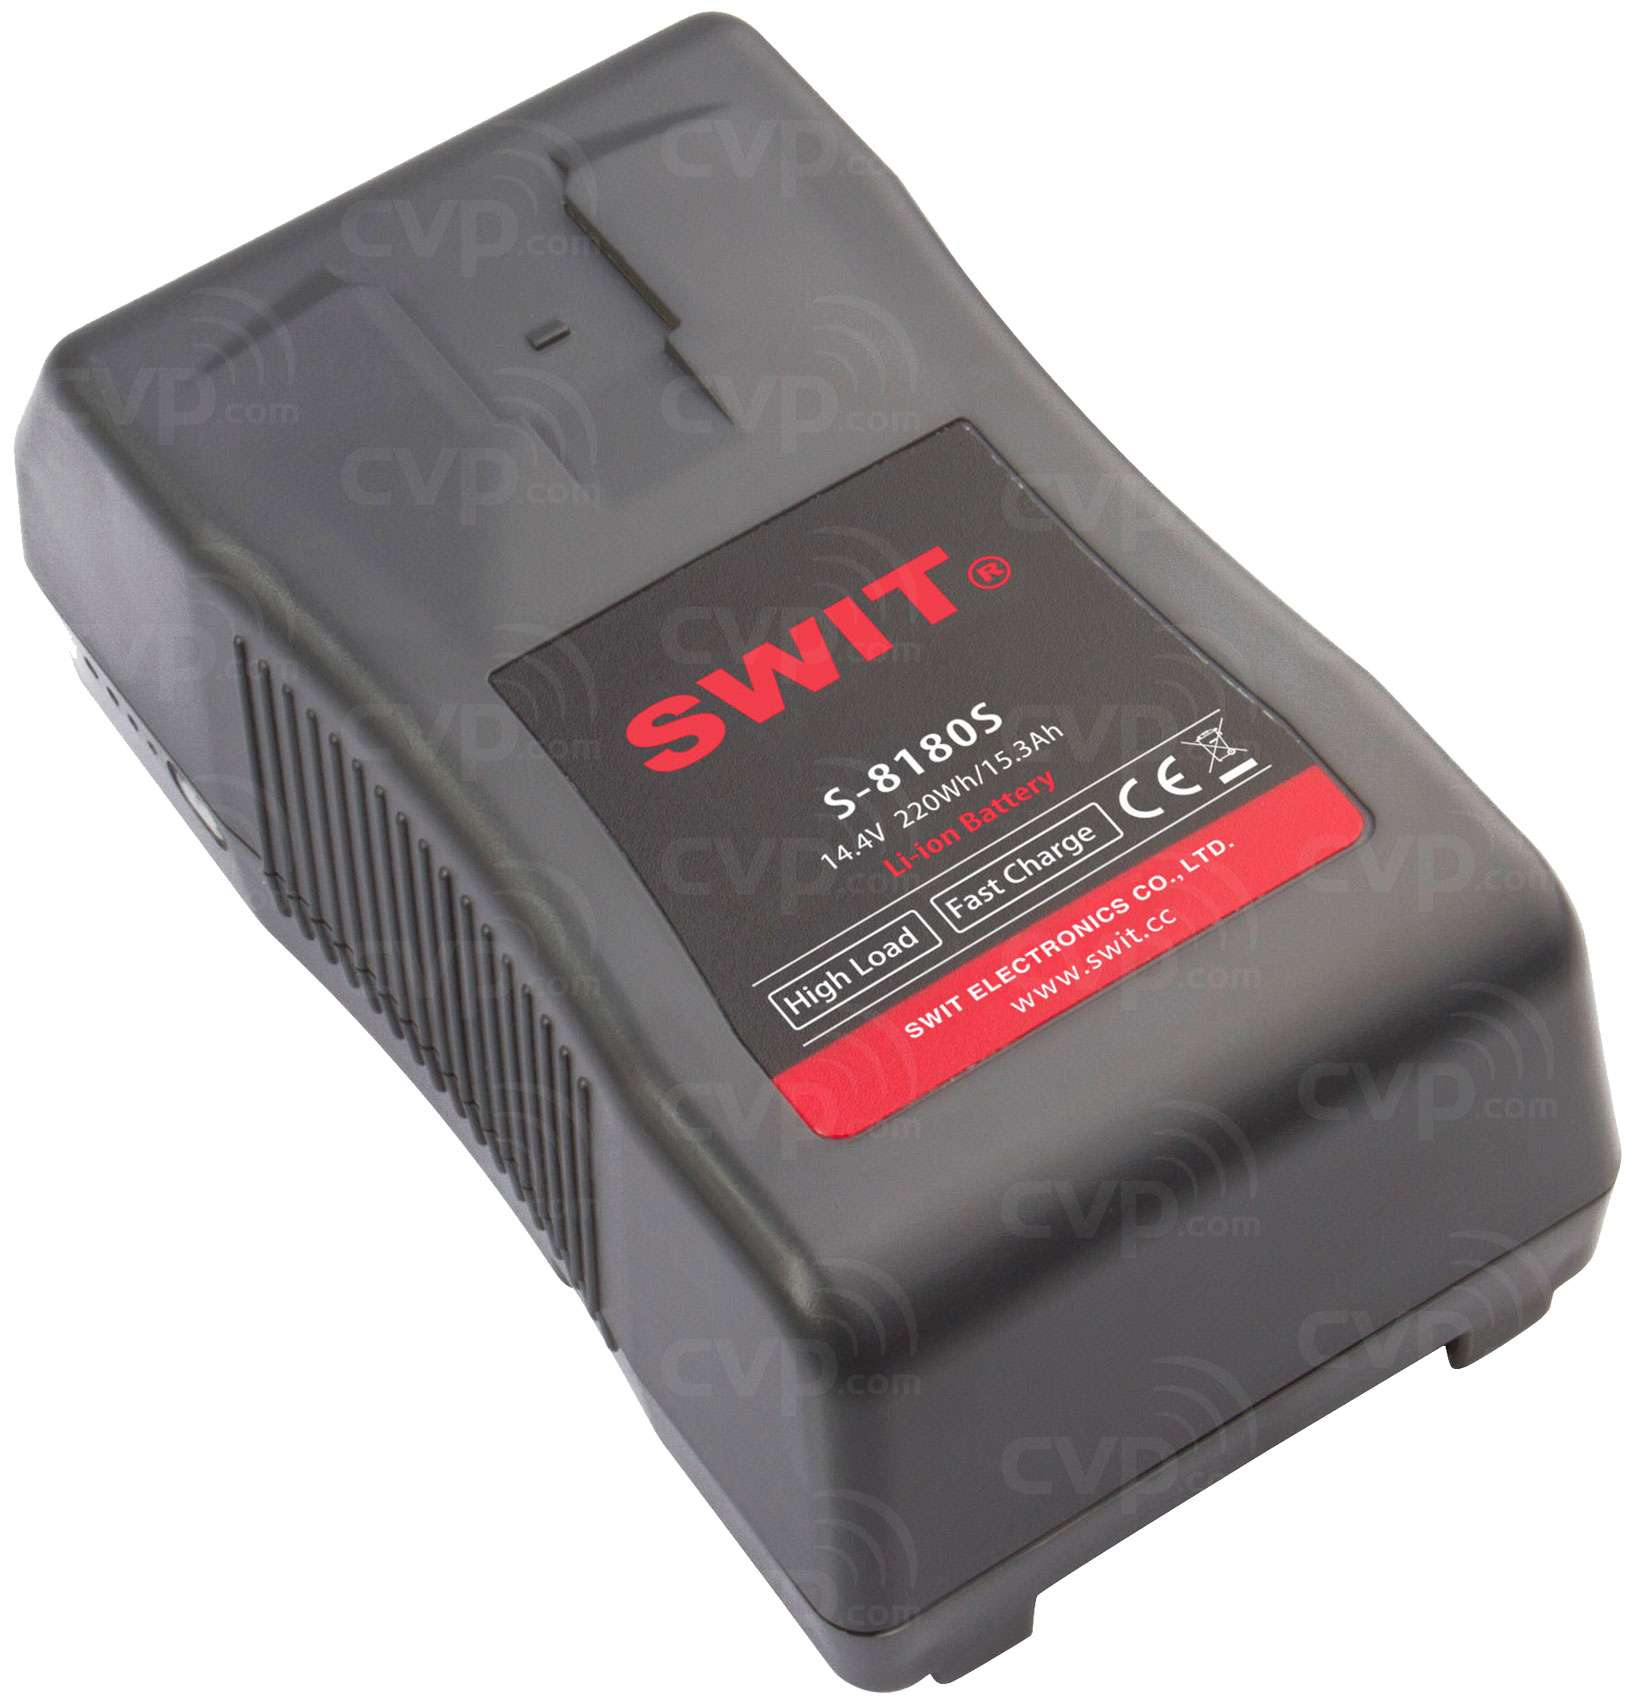 Swit S-8180S V-Mount 220Wh Battery